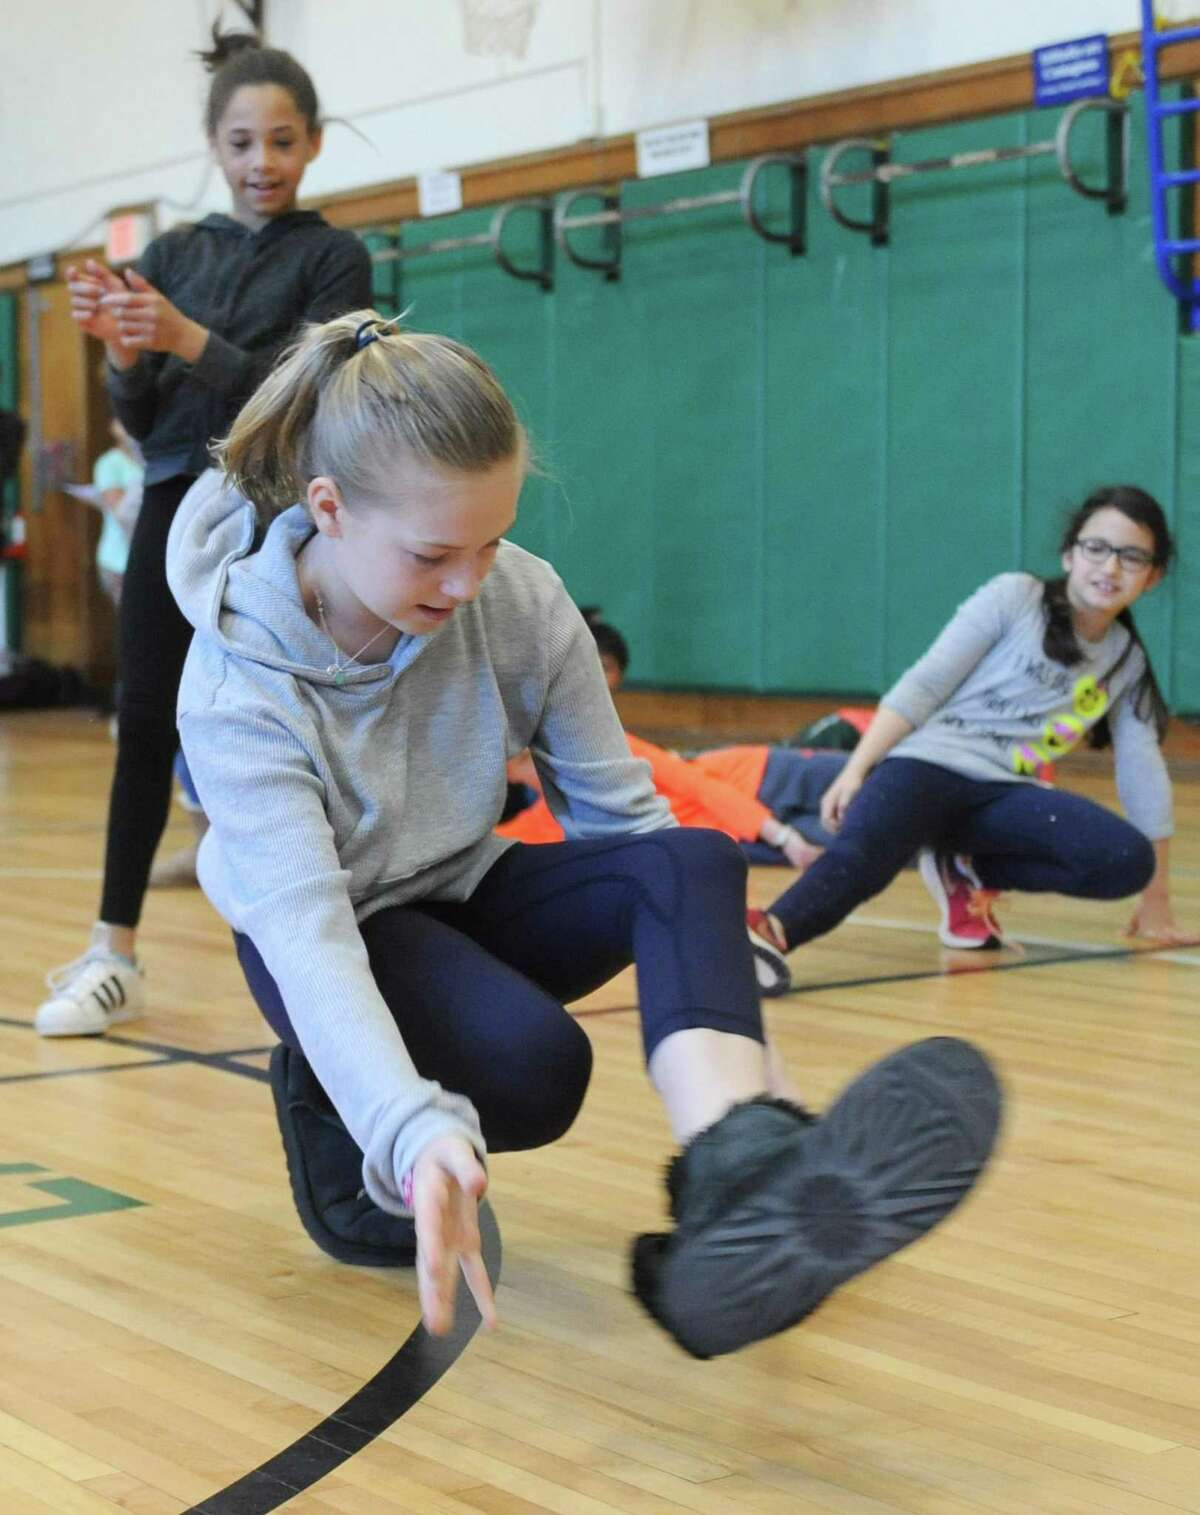 Fifth-grader Talia Muir breakdances during the Brazilian and Hip-Hop Dance Performance at Julian Curtiss School in Greenwich, Conn. Thursday, April 5, 2018. Connecticut Ballet teaching artists joined Julian Curtiss fourth- and fifth-graders for six weeks to teach dance during physical education classes. The lessons culminated with a performance in front of parents and then the entire school on Thursday. The lessons and performance were made possible with funding from the Greenwich Alliance for Education.